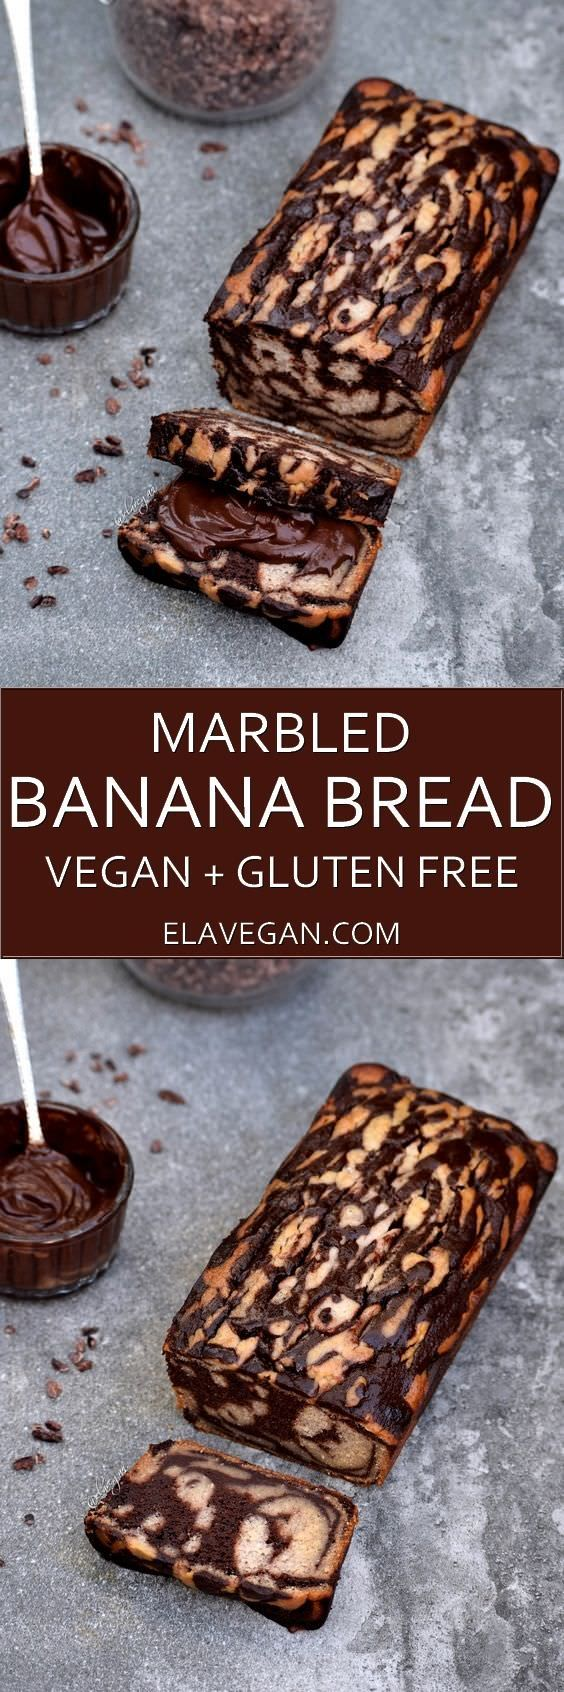 Marbled banana bread recipe. This delicious banana loaf is moist, chocolately, low in fat, egg free, dairy, free, refined sugar free, gluten free and of course vegan. Serve it with a homemade chocolate spread.